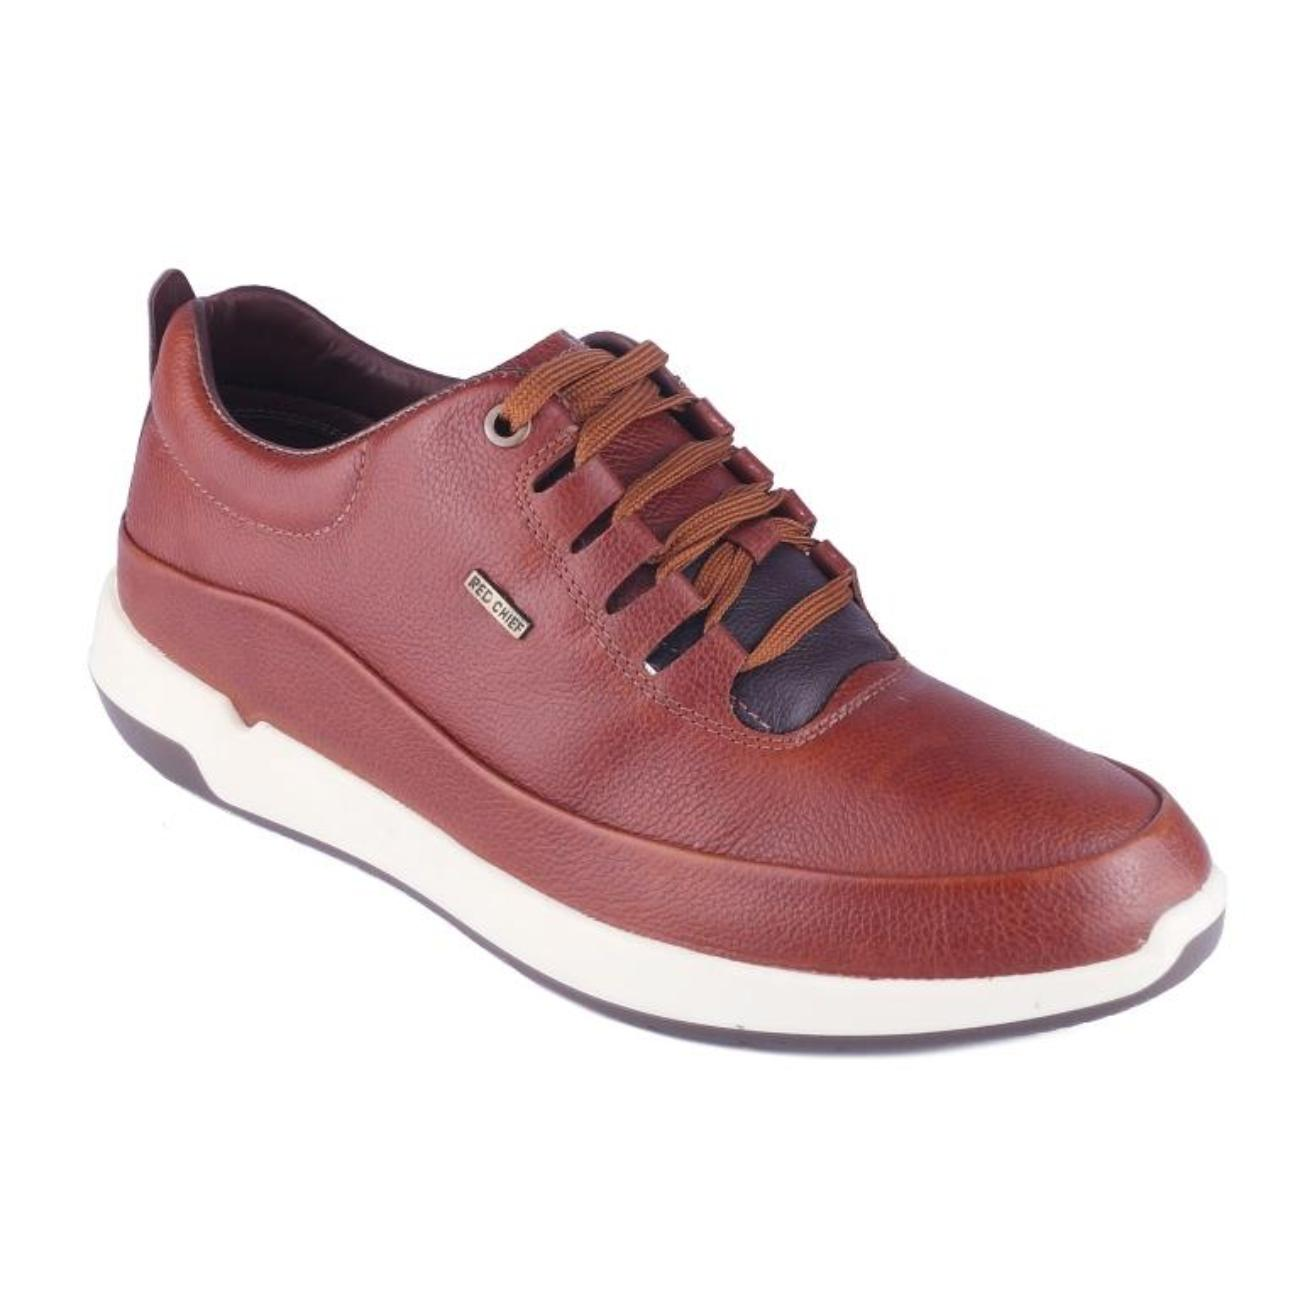 brown casual shoes online